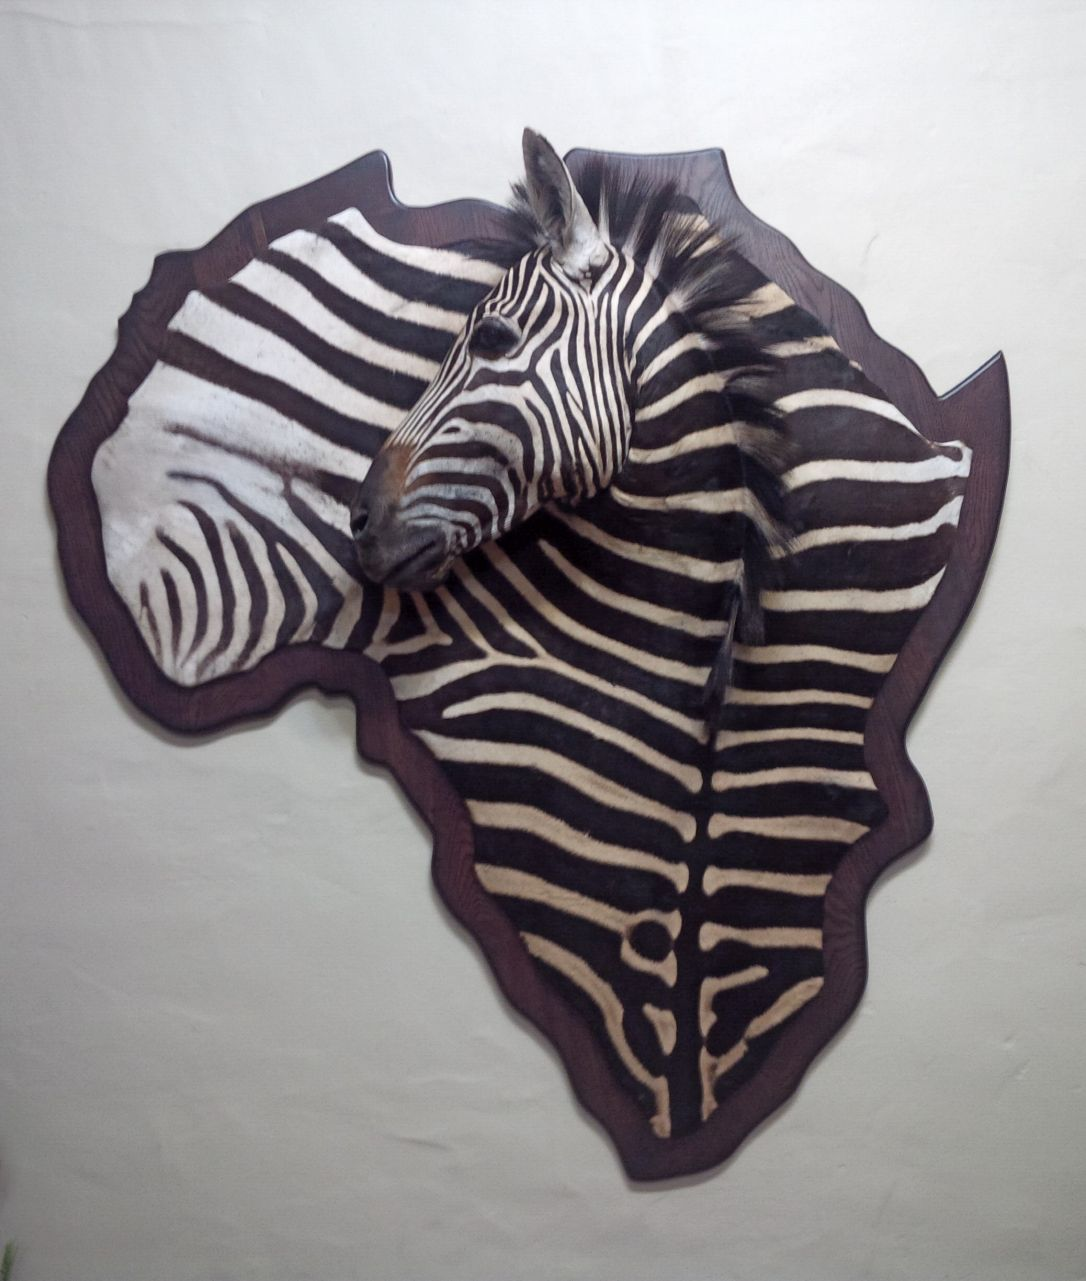 Zebra wall plaque.jpg